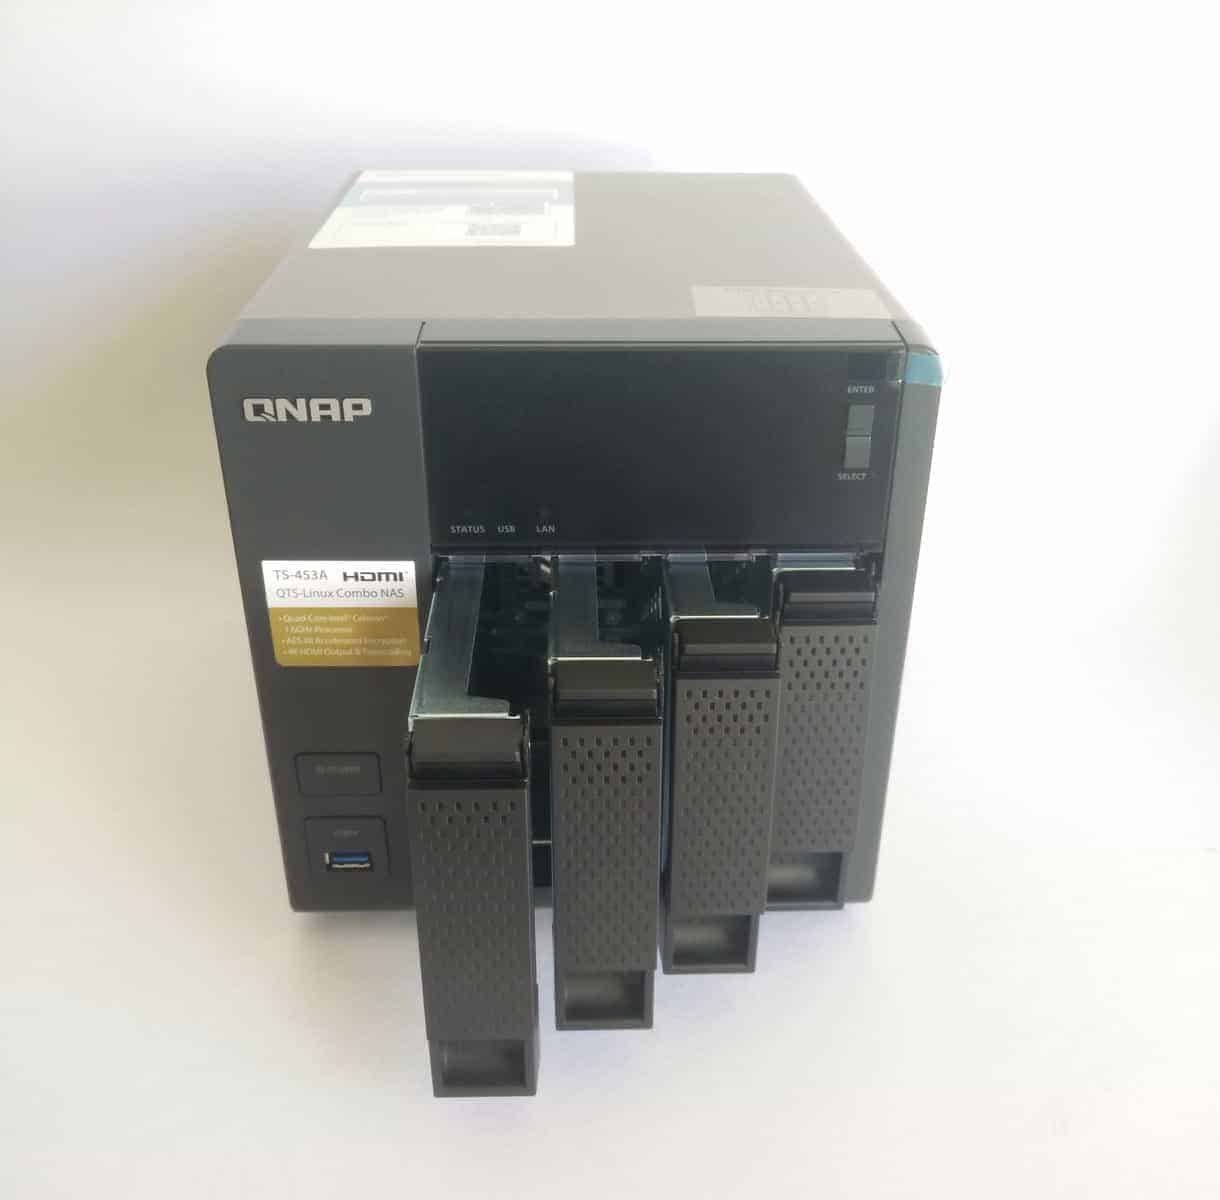 QNAP TS-453A 4 Bay NAS Review - The Streaming Blog